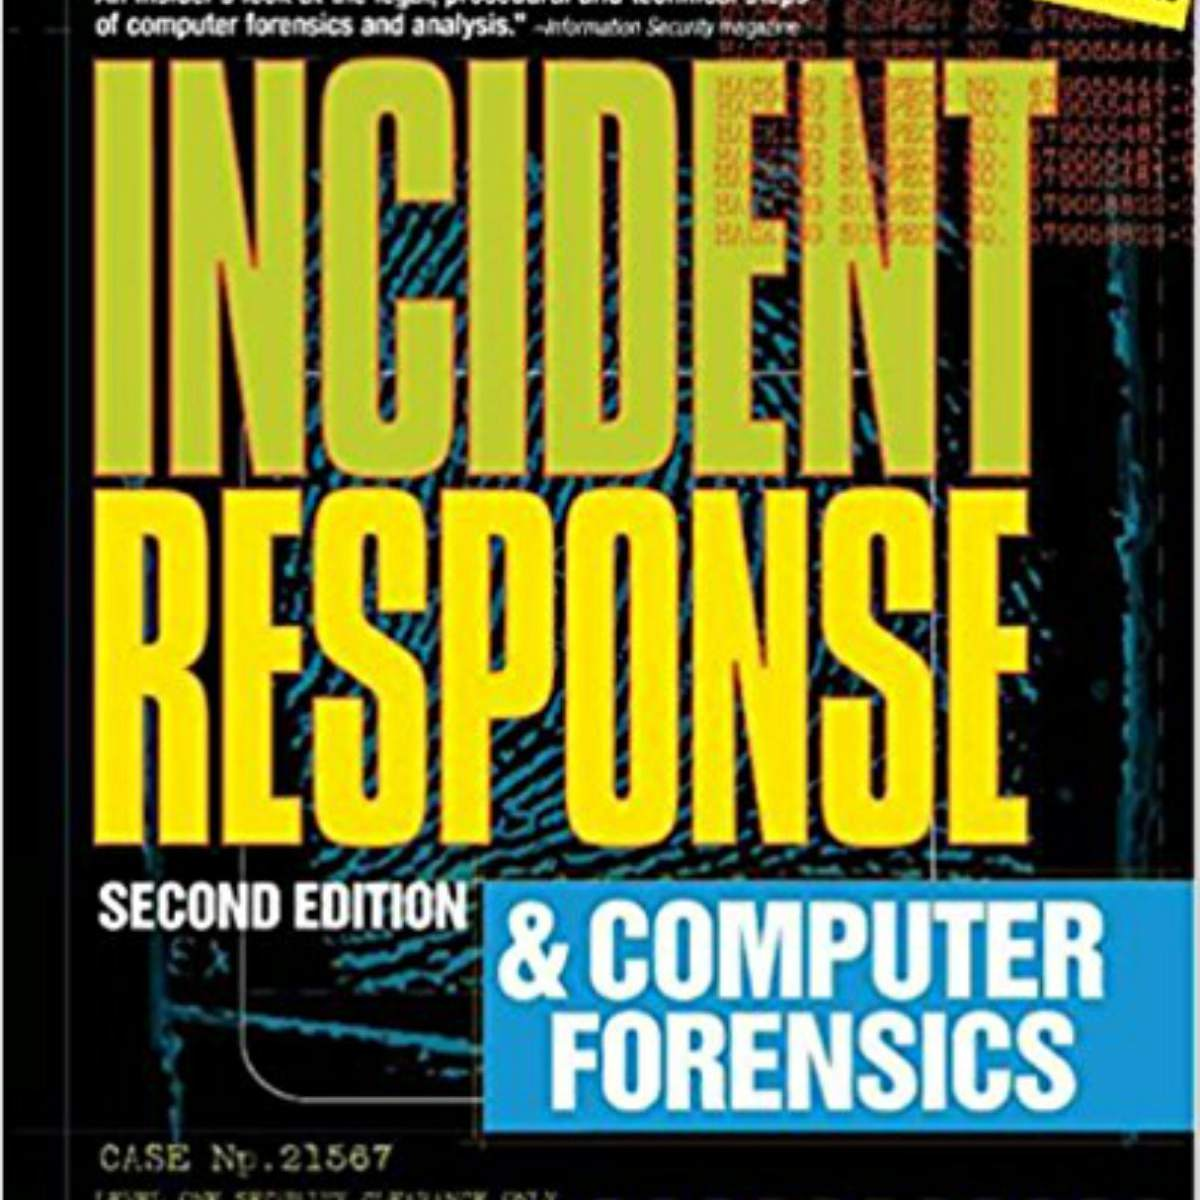 Top 5 Forensic and Incident Response Books